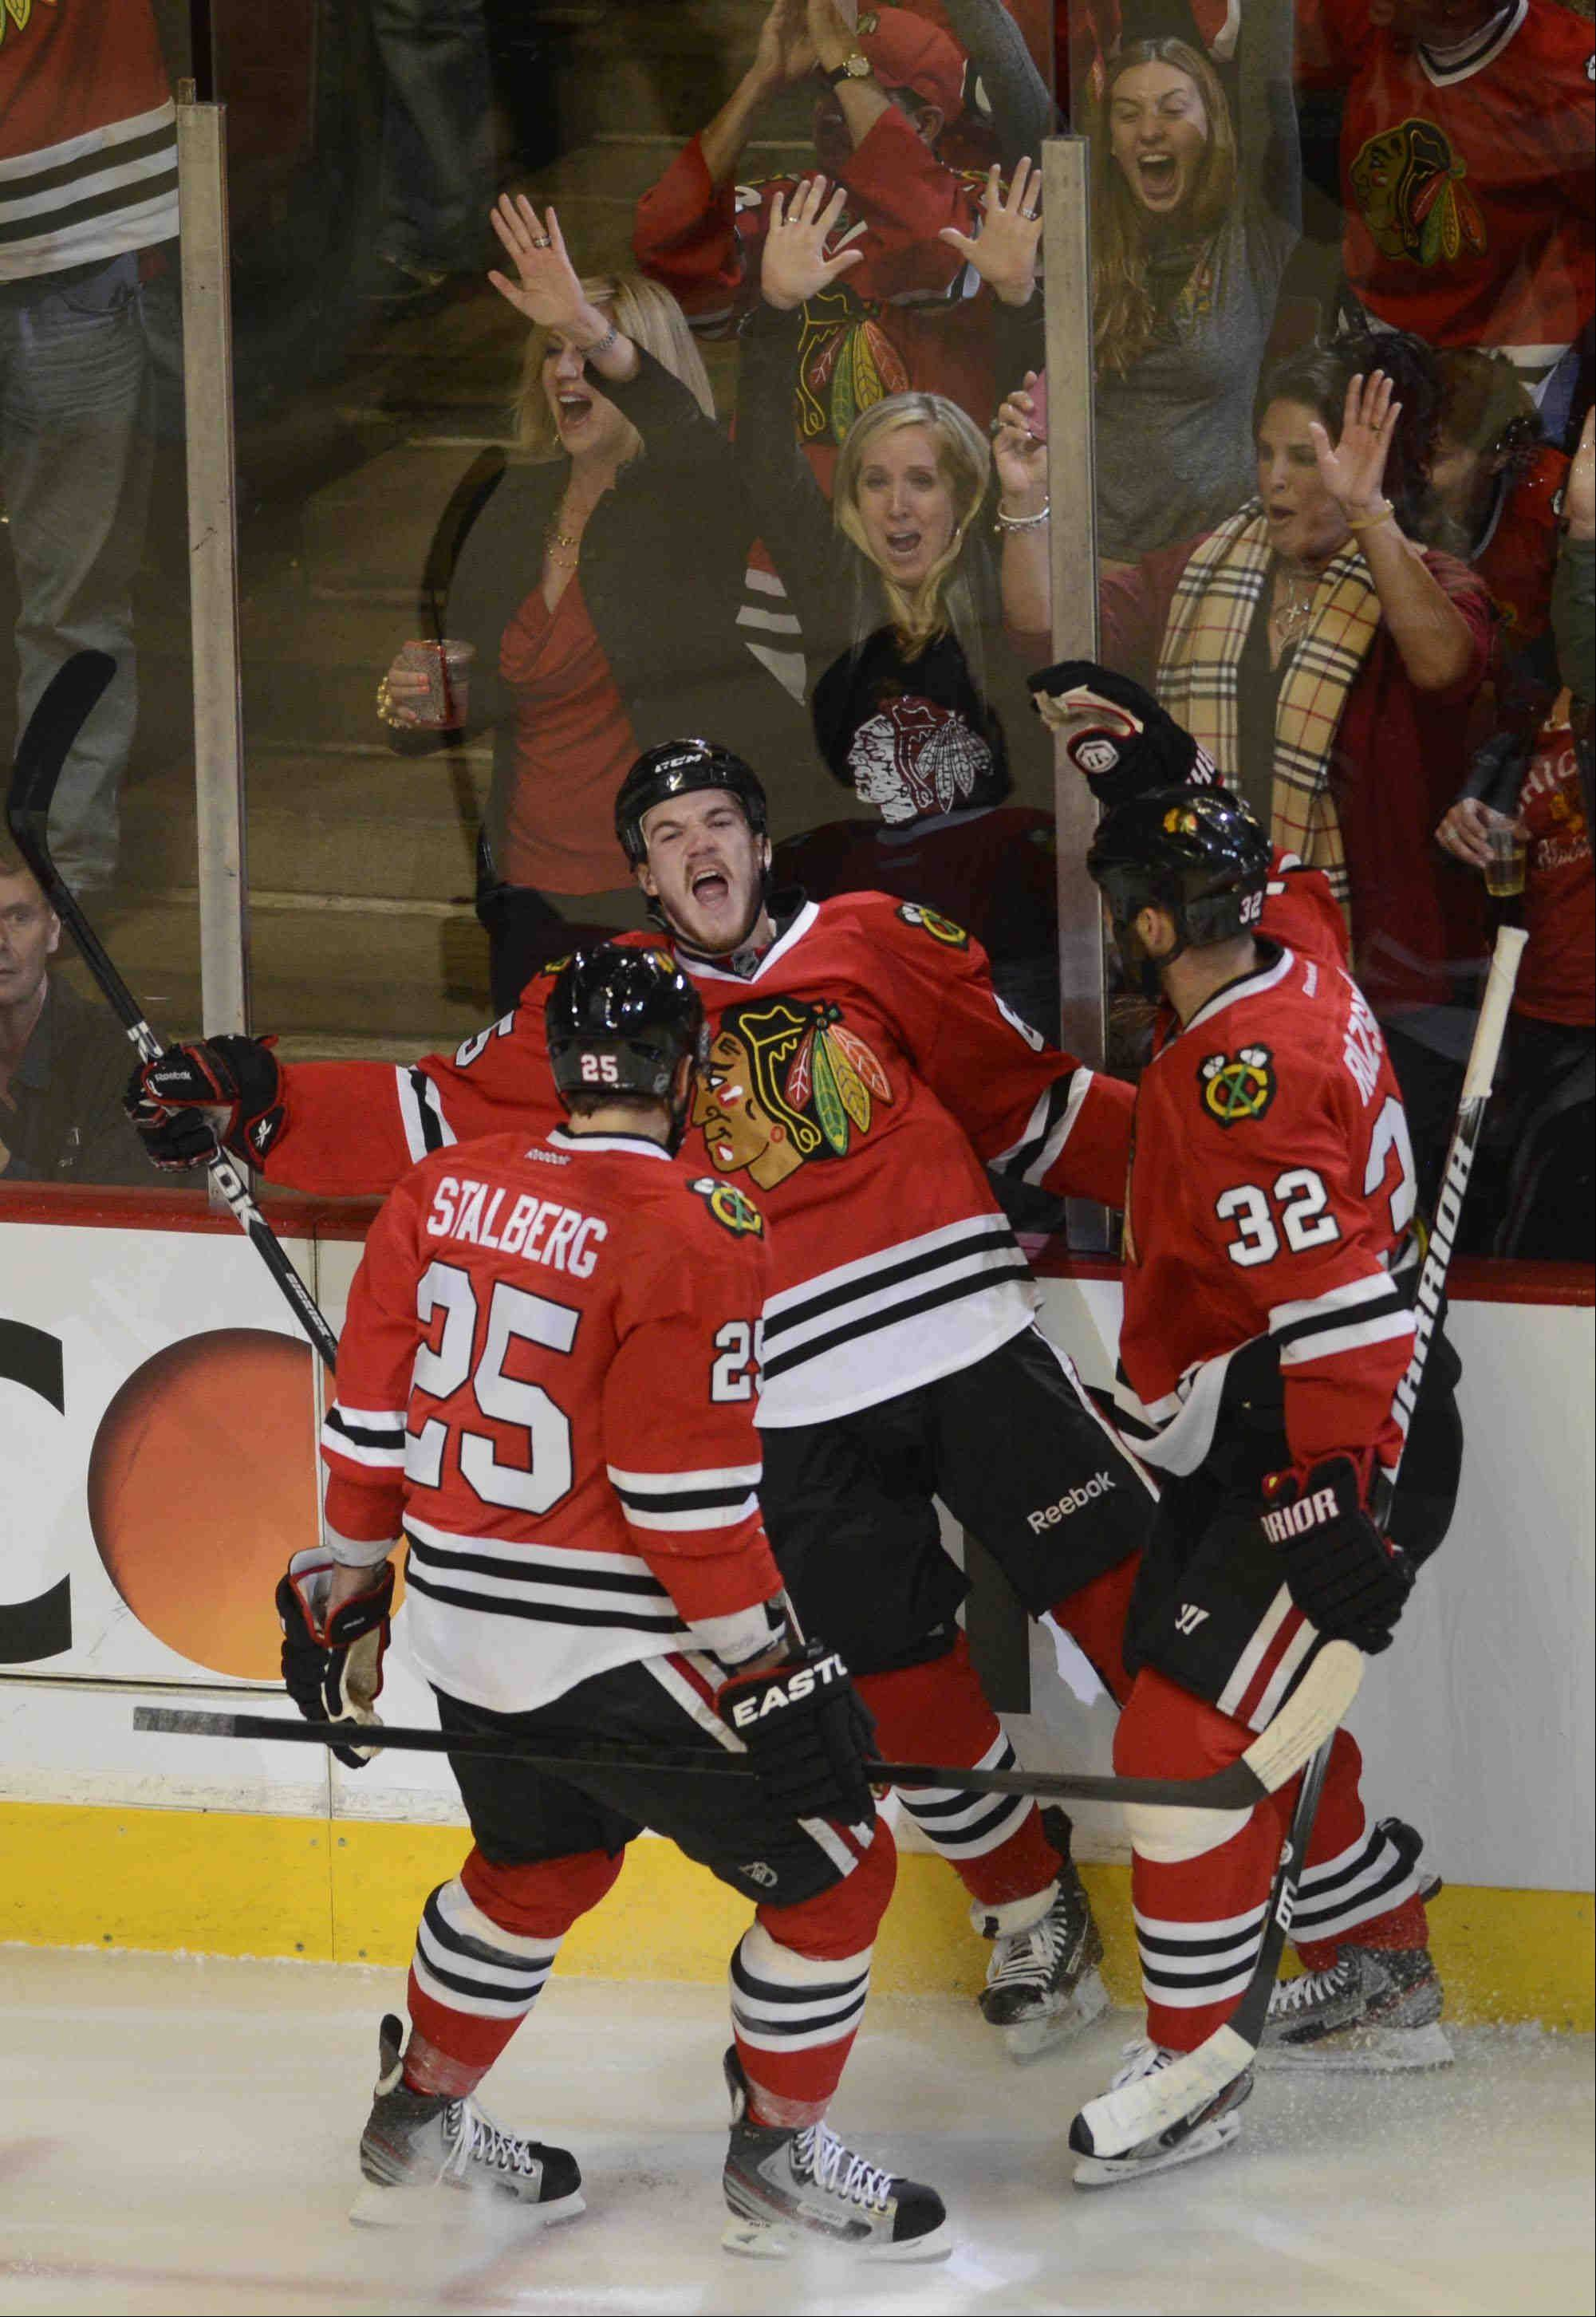 Blackhawks center Andrew Shaw celebrates his first-period goal against the Los Angeles Kings during Game 2 of the NHL Western Conference finals at the United Center Sunday night in Chicago.